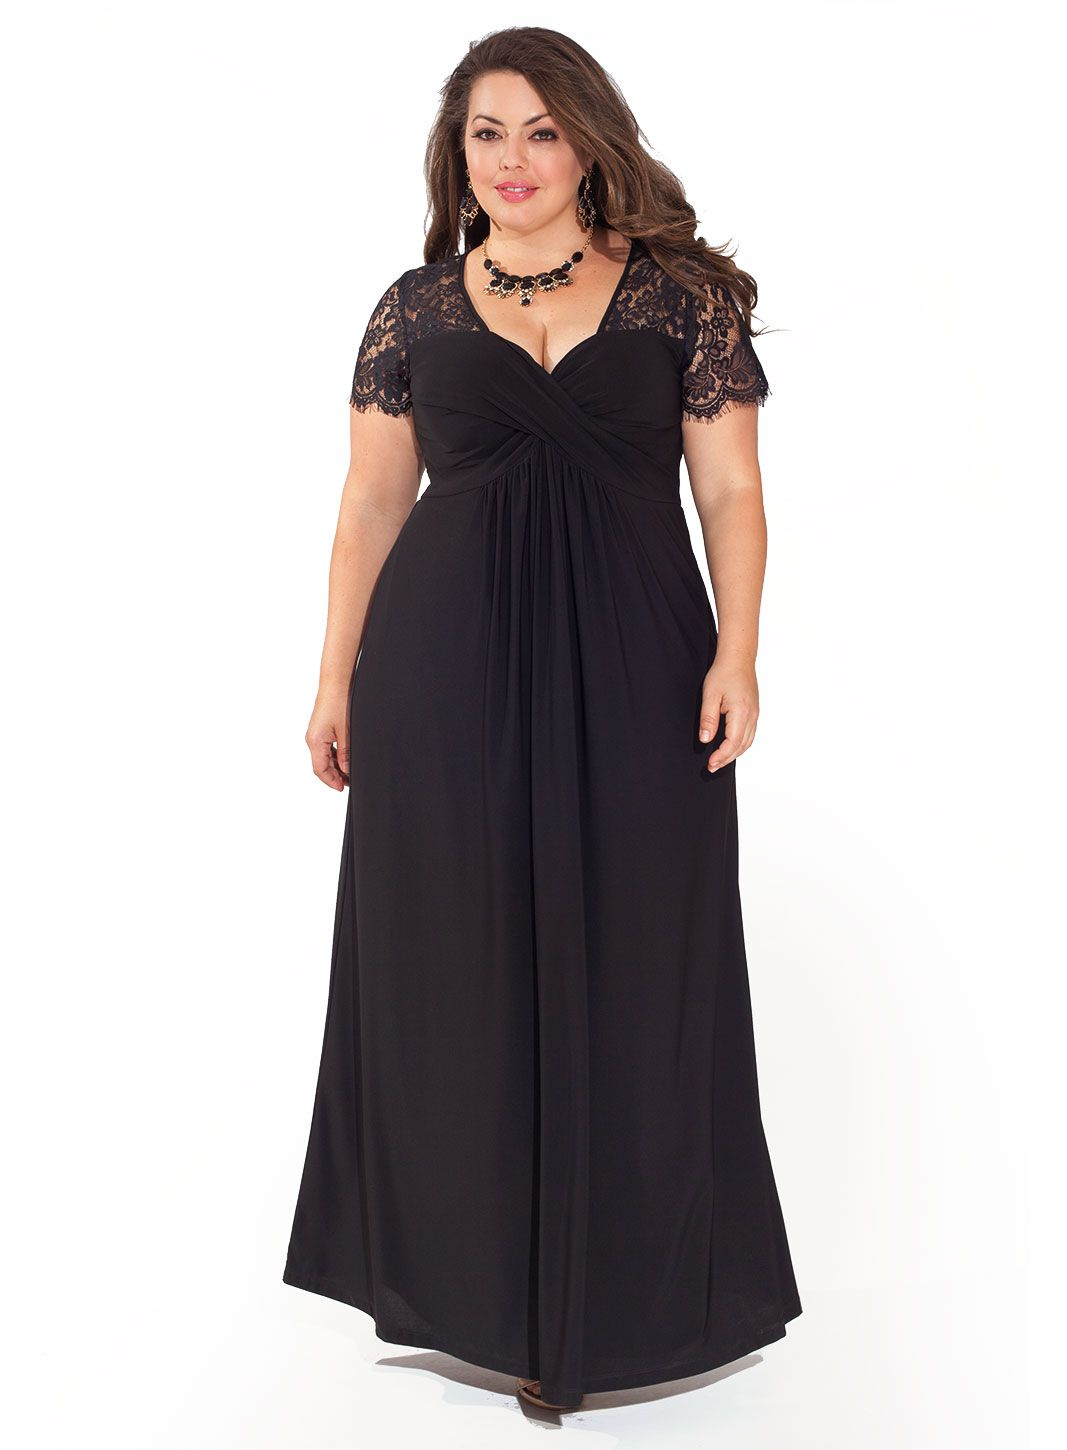 Vintage style 1940s plus size dresses 1940s gowns and black 1940s style cocktail dress monica gown in black and in plus sizes 23800 at ombrellifo Gallery